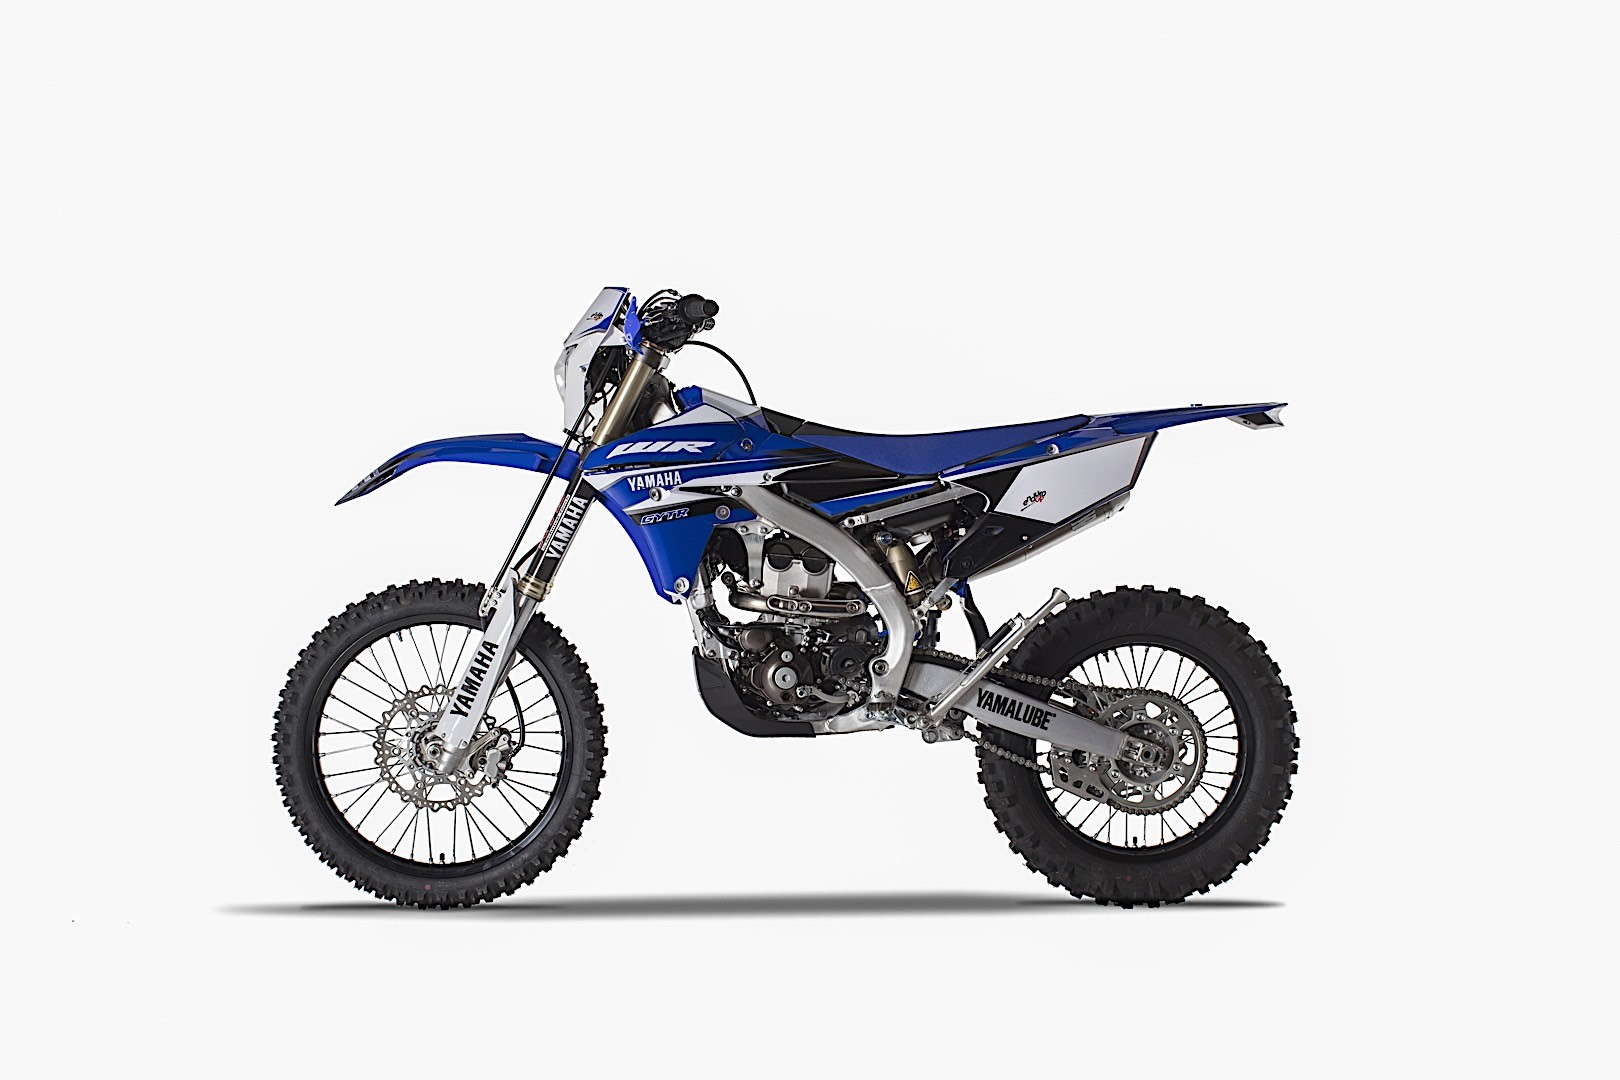 Yamaha Wr450f And Wr250f Endorogp Special Editions